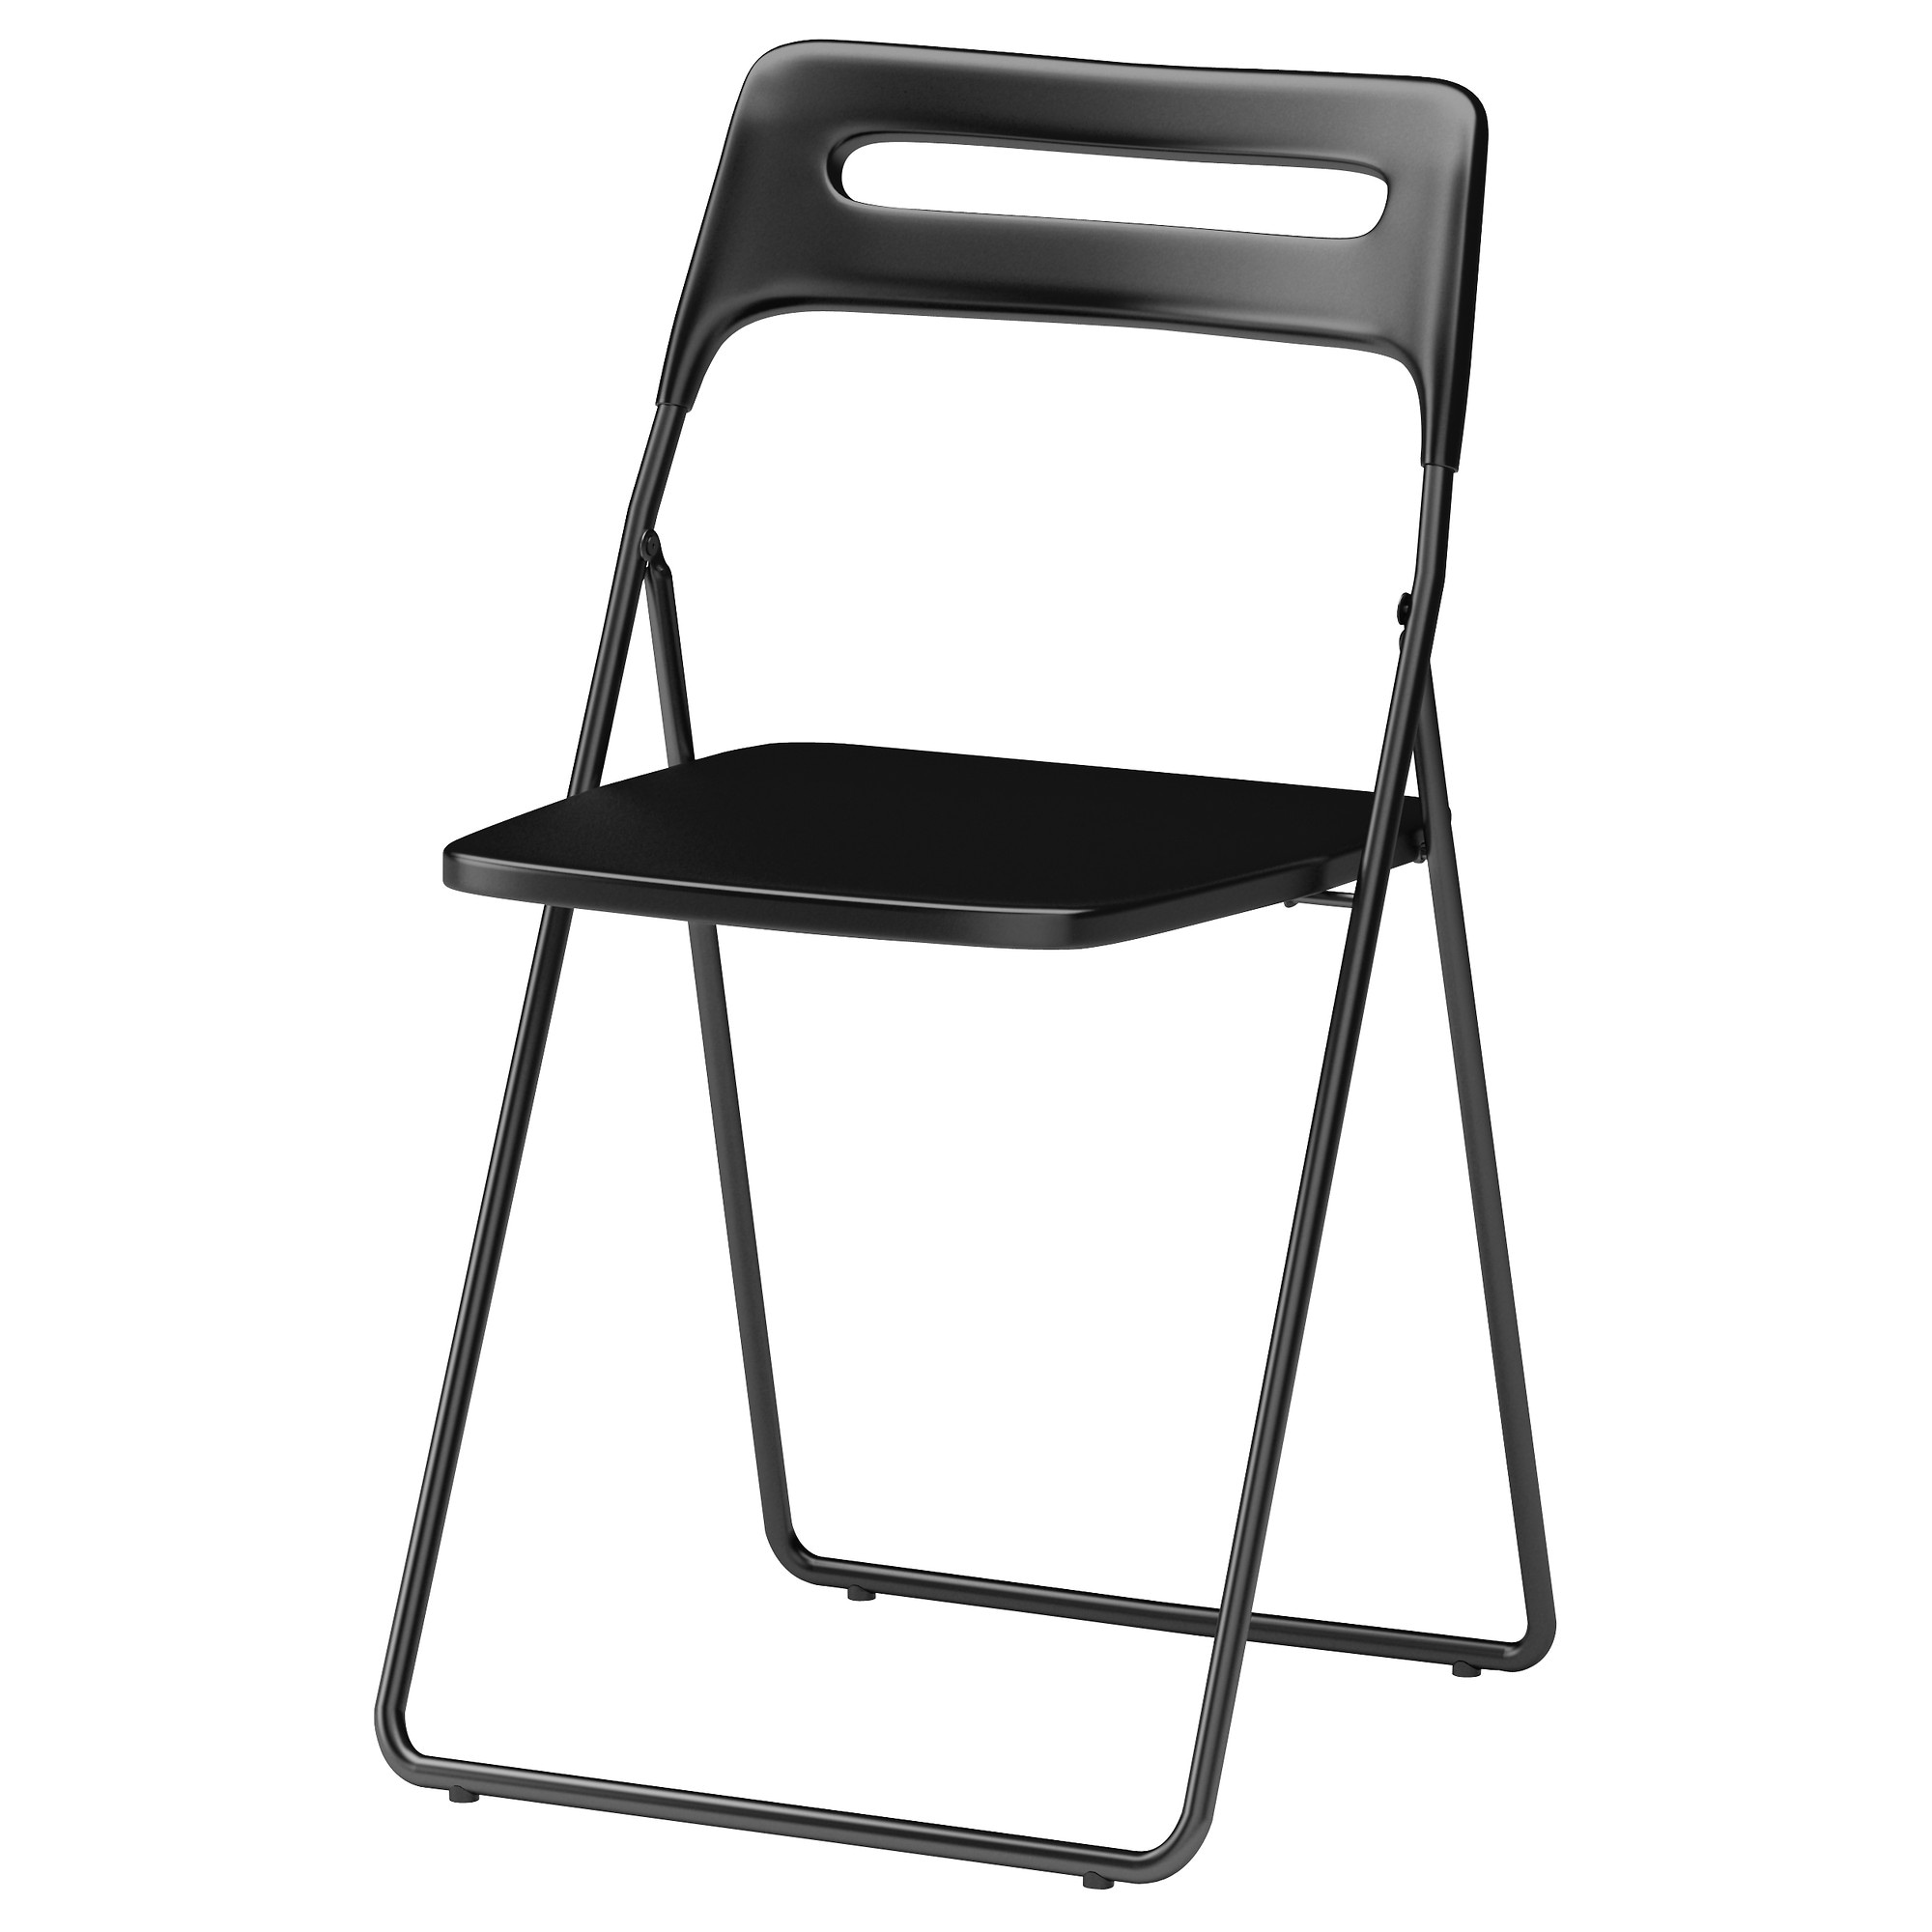 chairs ikea foldable ptyssomeni chair dining tirkoyaz folding karekla room en frode